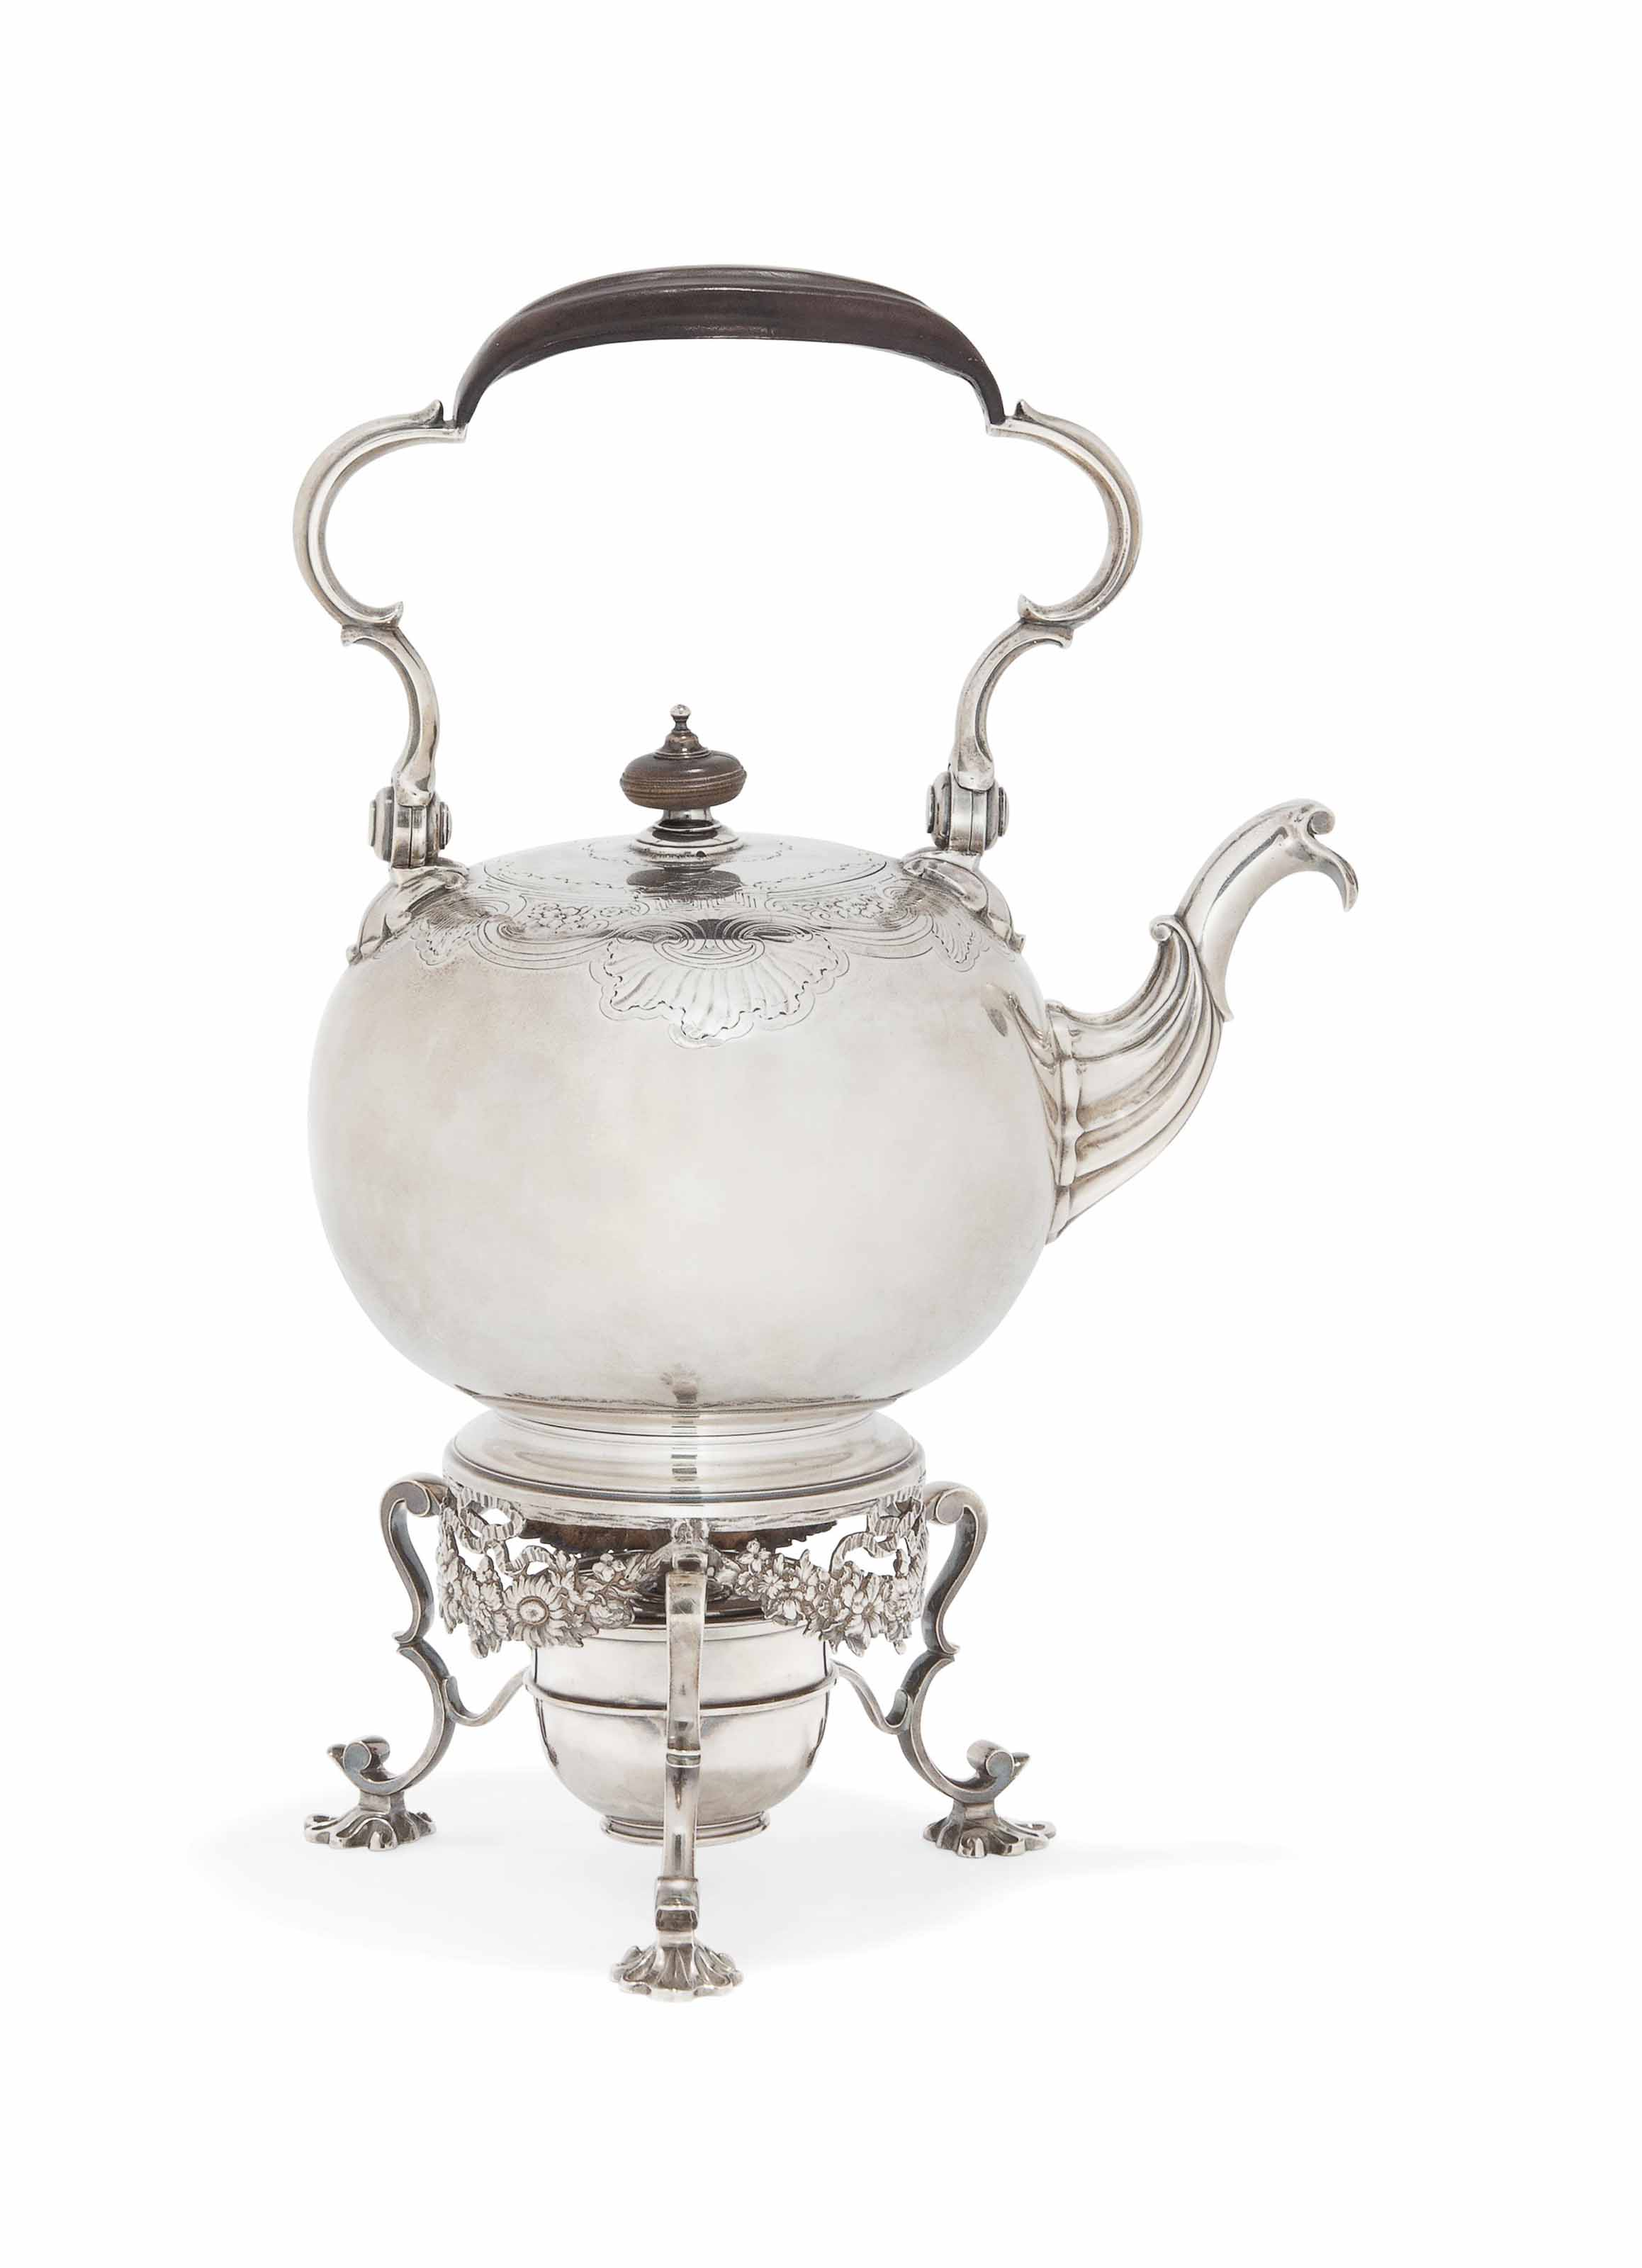 A GEORGE II SILVER TEA KETTLE AND STAND